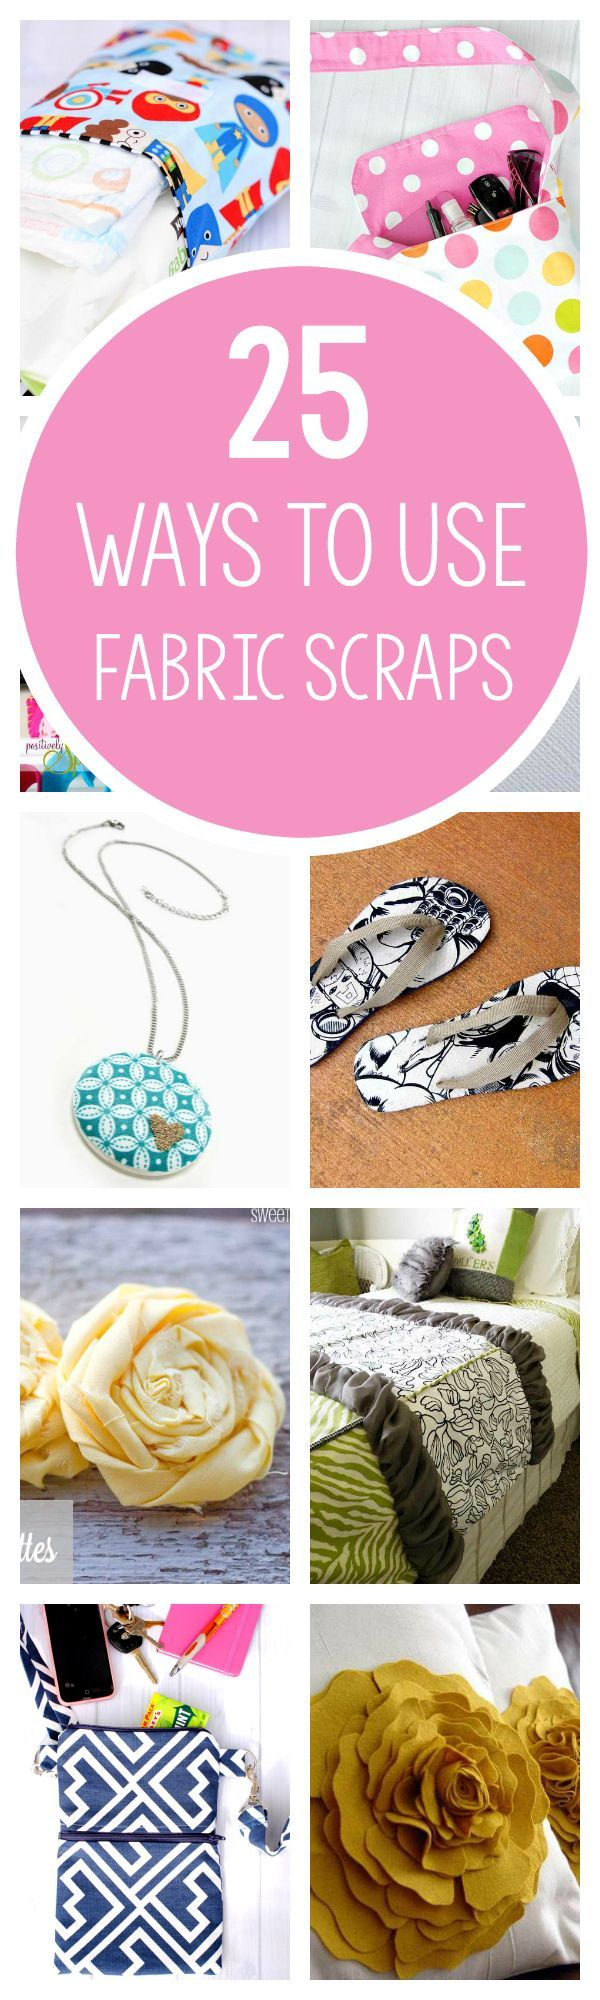 25 Things to Do with Fabric Scraps Melissa  Mortenson | Polka Dot Chair